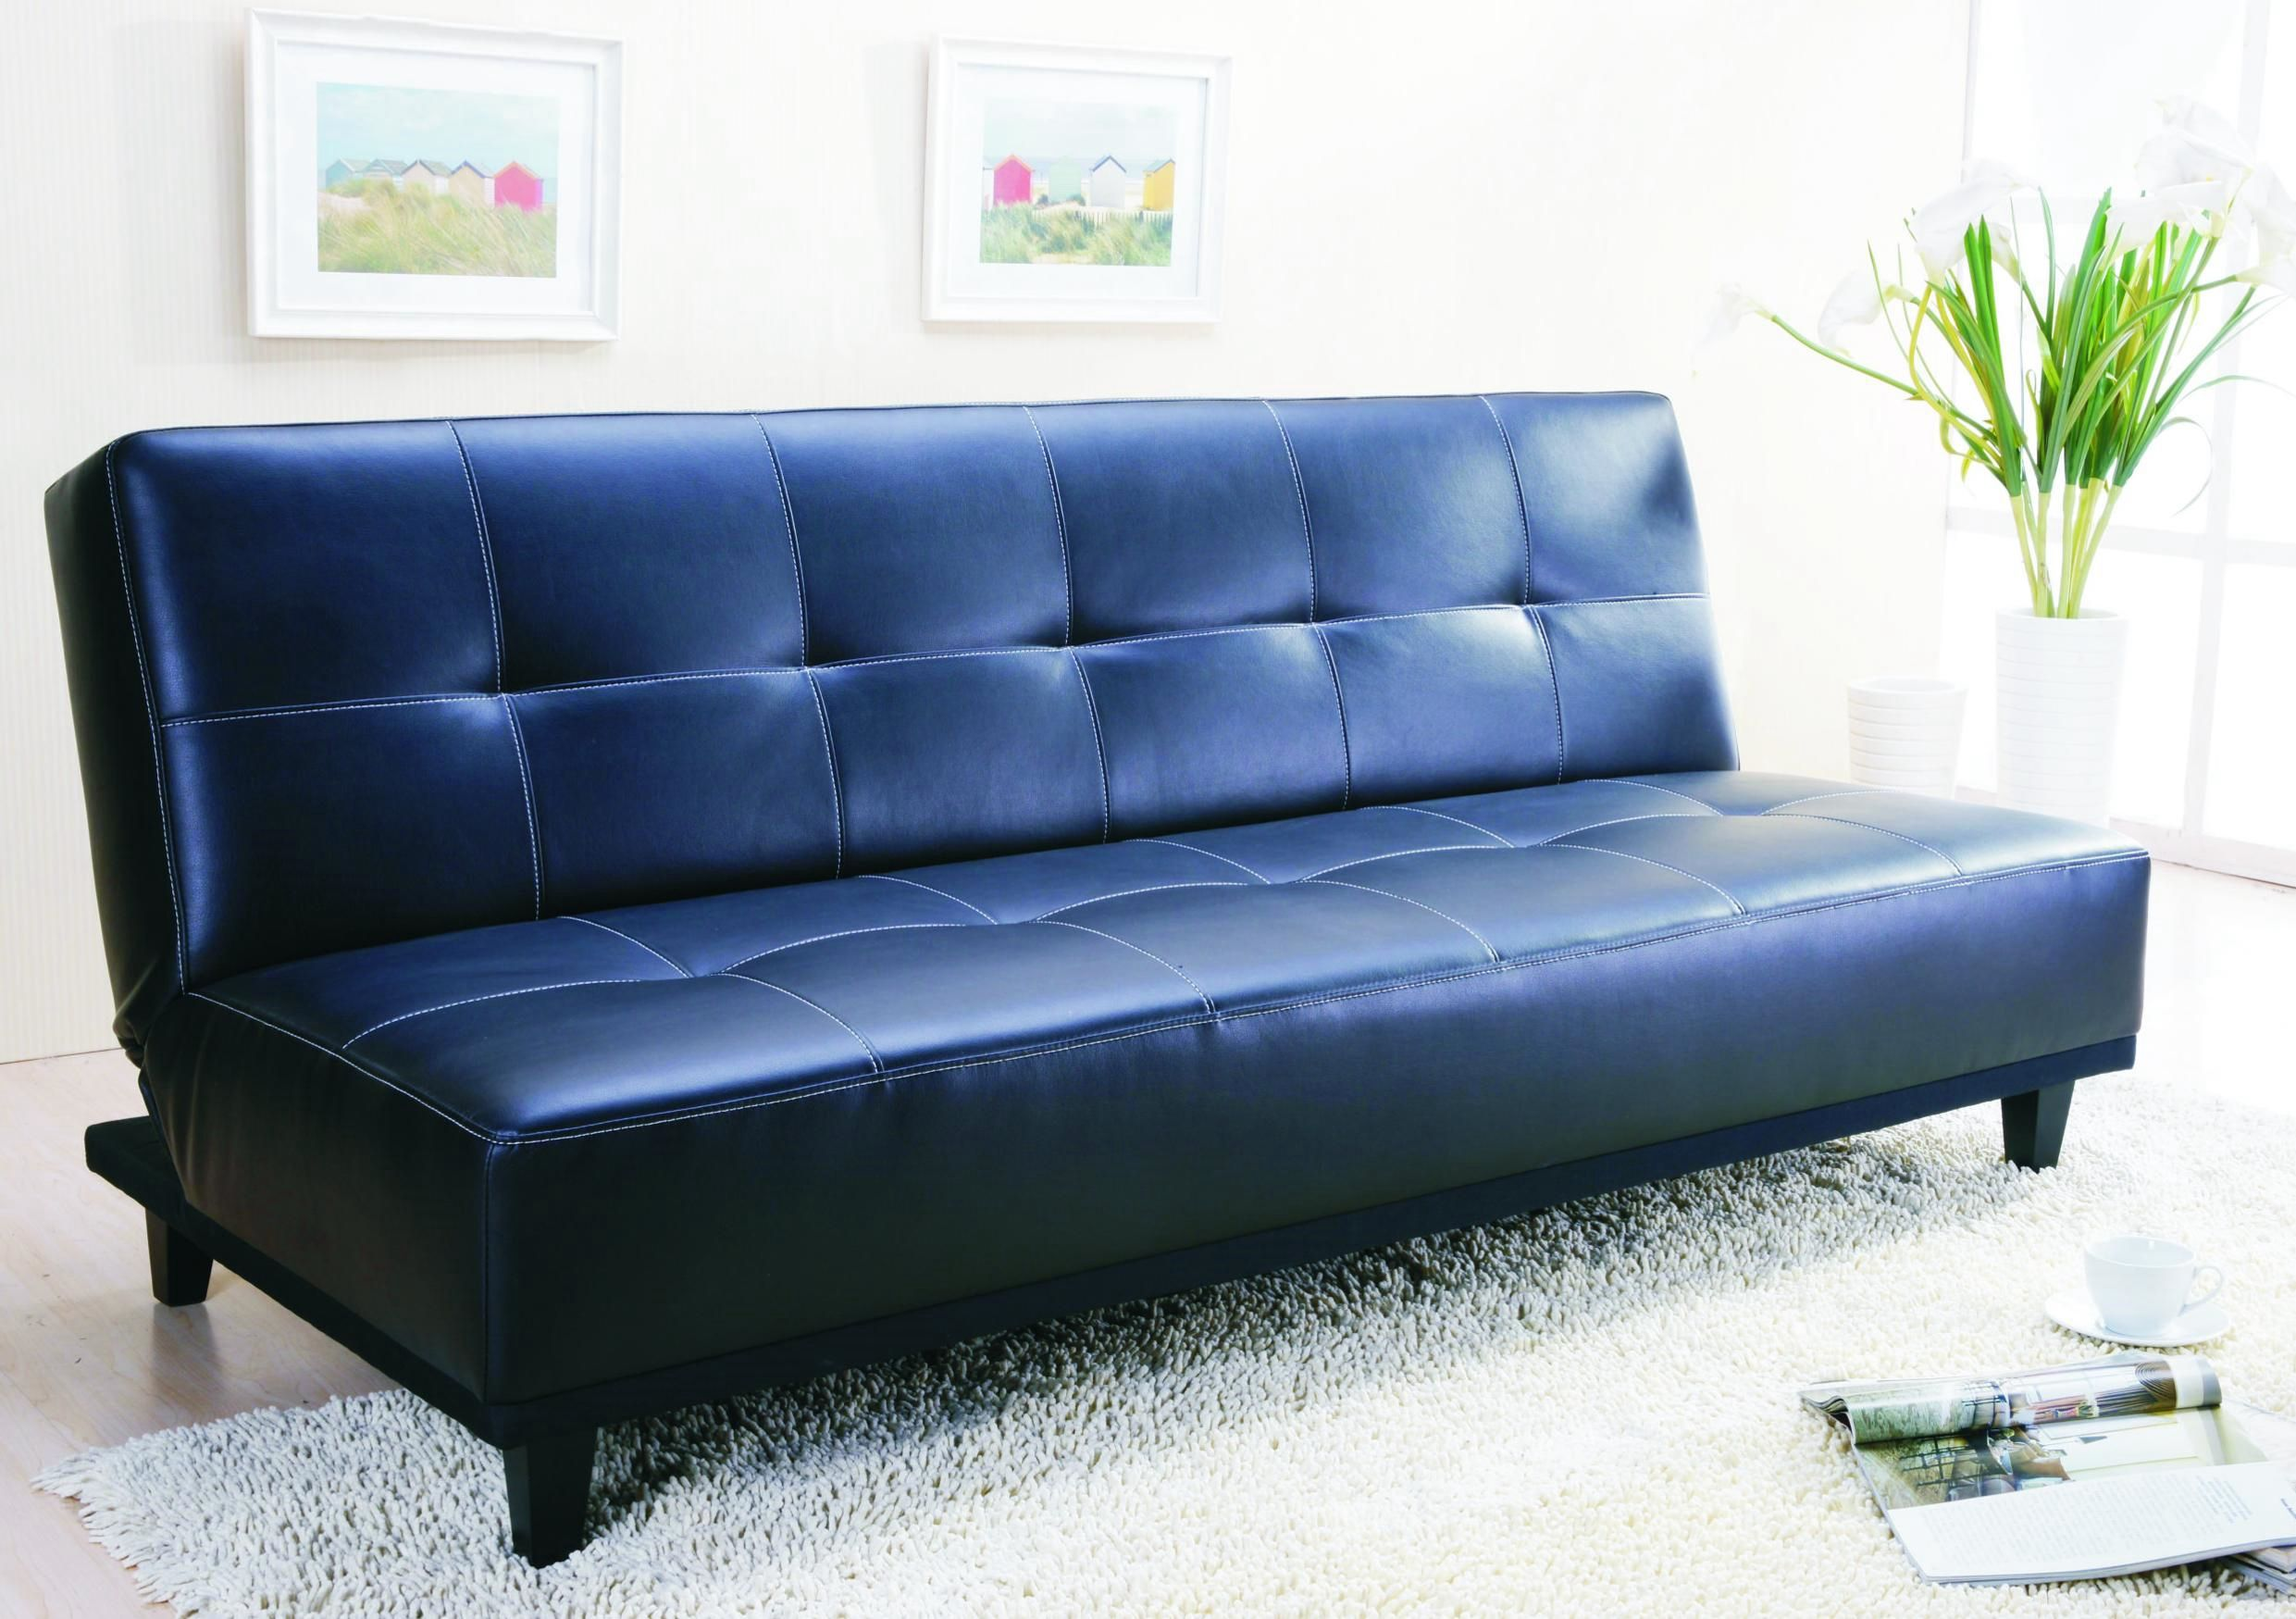 Nice Blue Leather Sofas Trend Blue Leather Sofas 36 For Your Modern Sofa Ideas With Blue Leather Sofas Leather Sofa Bed Blue Leather Sofa Blue Leather Couch